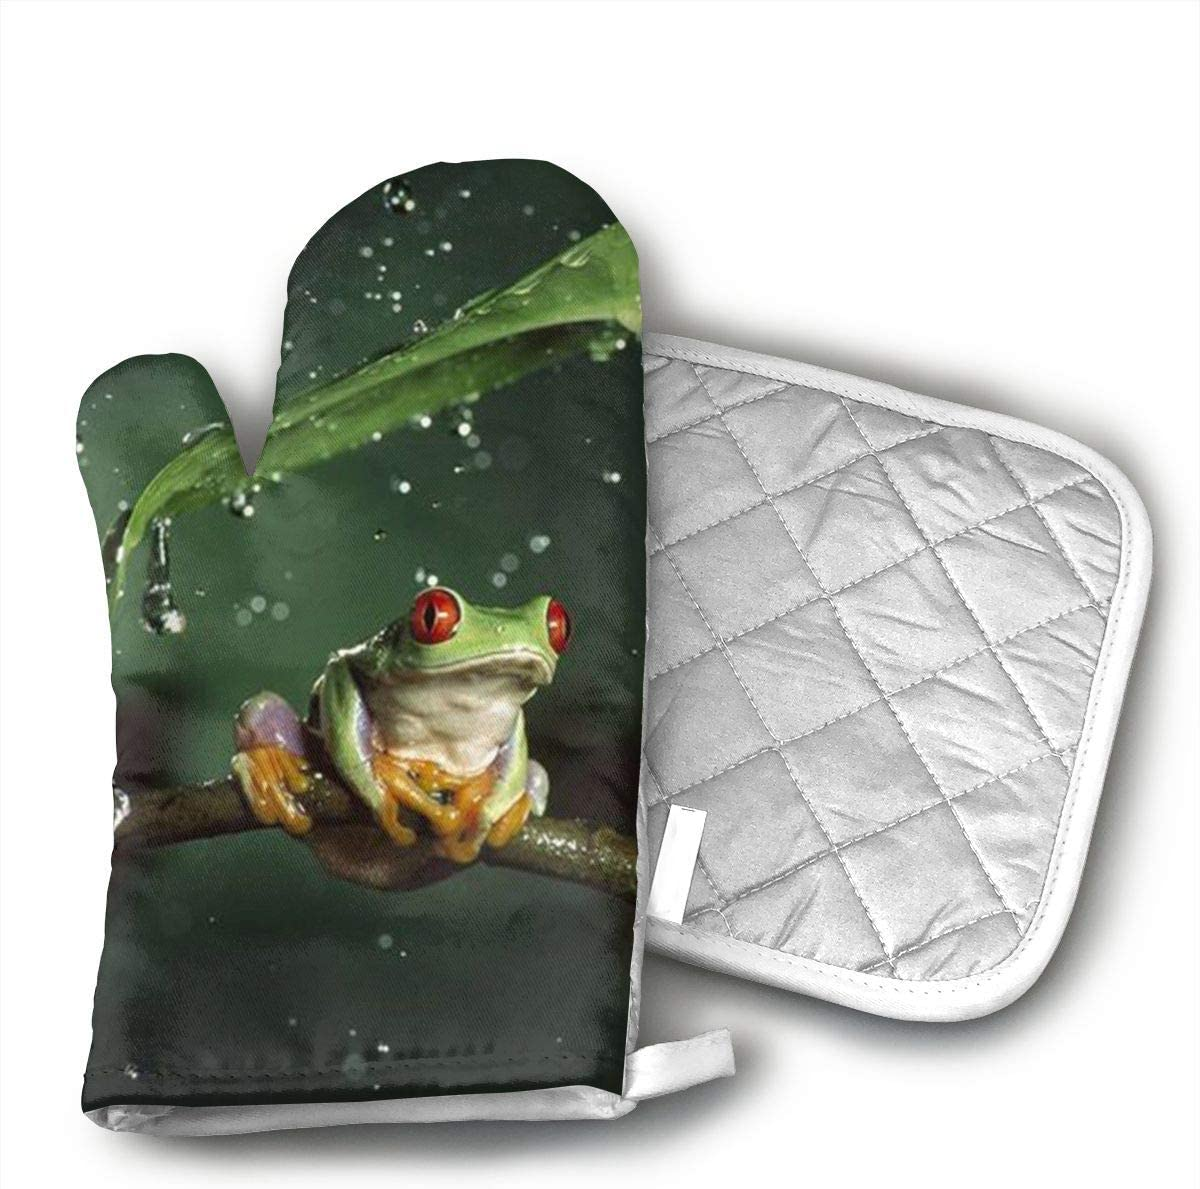 KEIOO Nature Rain Hylidae Jungle Animals Frogs Oven Mitts and Potholders Heat Resistant Set of 2 Kitchen Set Non-Slip Grip Oven Gloves BBQ Cooking Baking Grilling